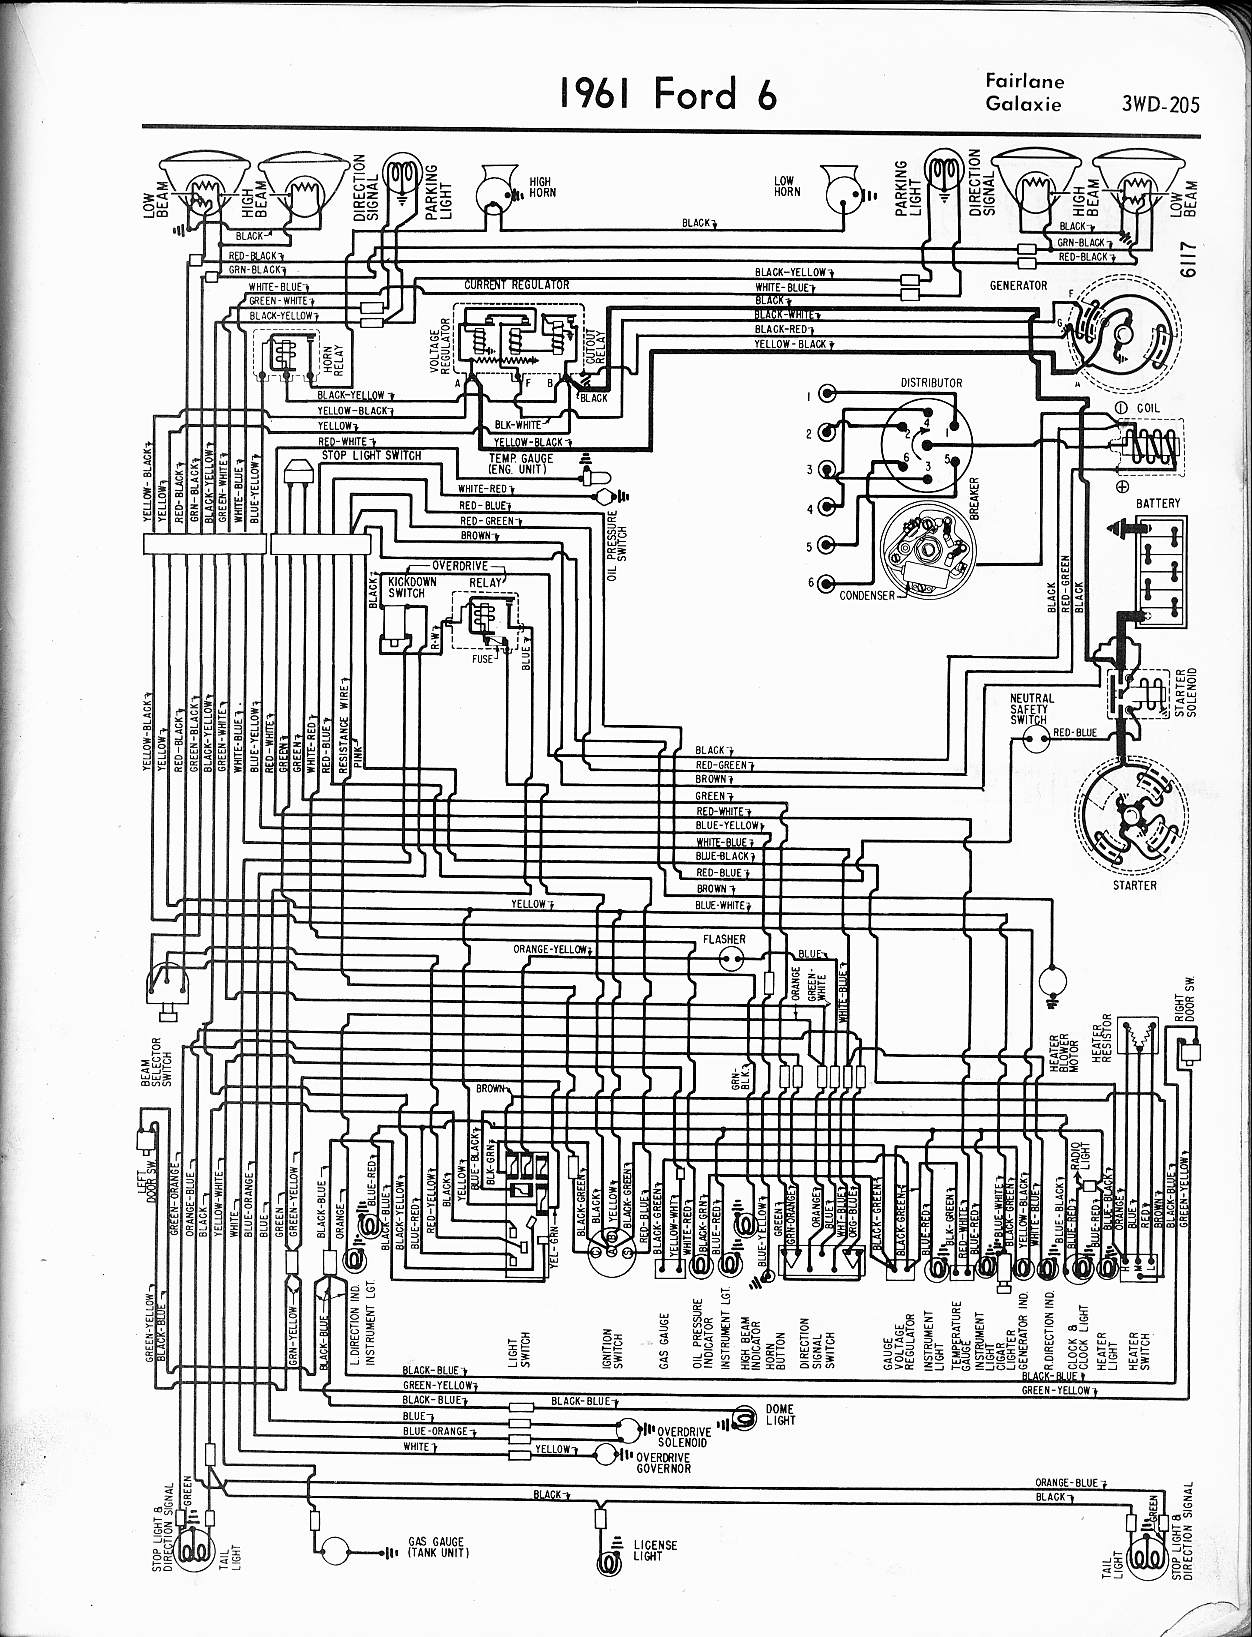 1972 ford f250 ignition wiring diagram simple wiring diagram rh david  huggett co uk 1968 Ford F100 Wiring Diagram 1968 Ford F-250 Turn Signal Wiring  Diagram